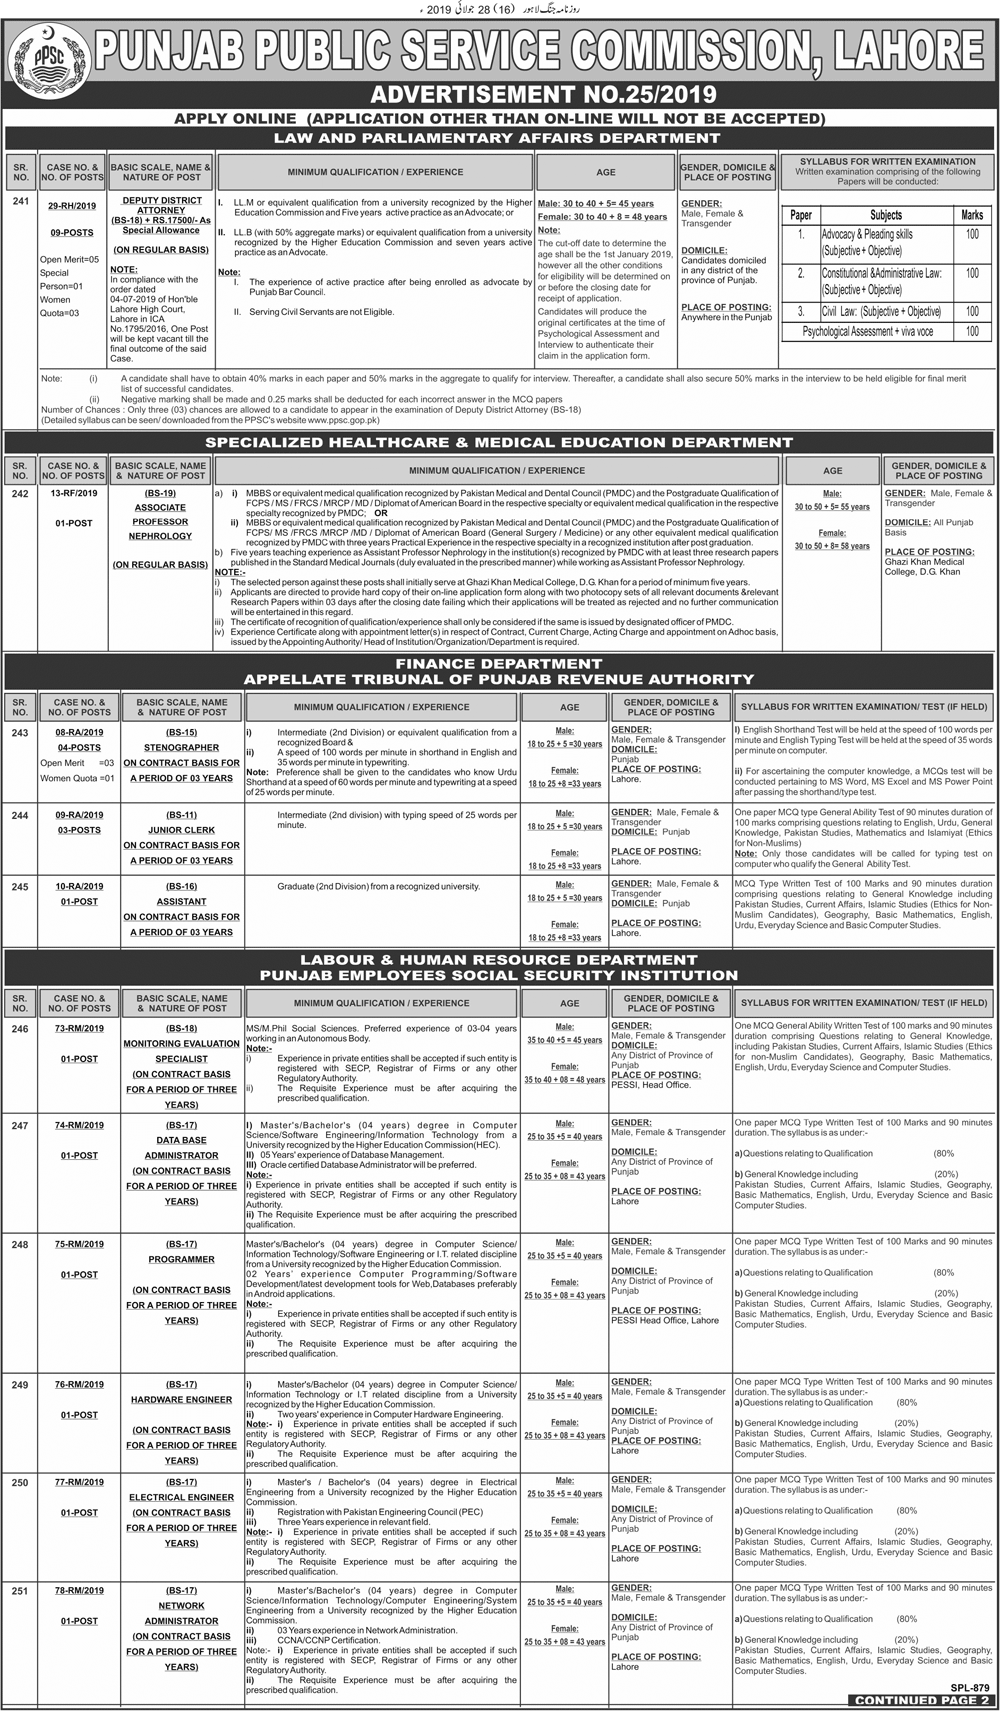 PPSC Jobs Today 2019 Advertisement No 25/2019 at Law